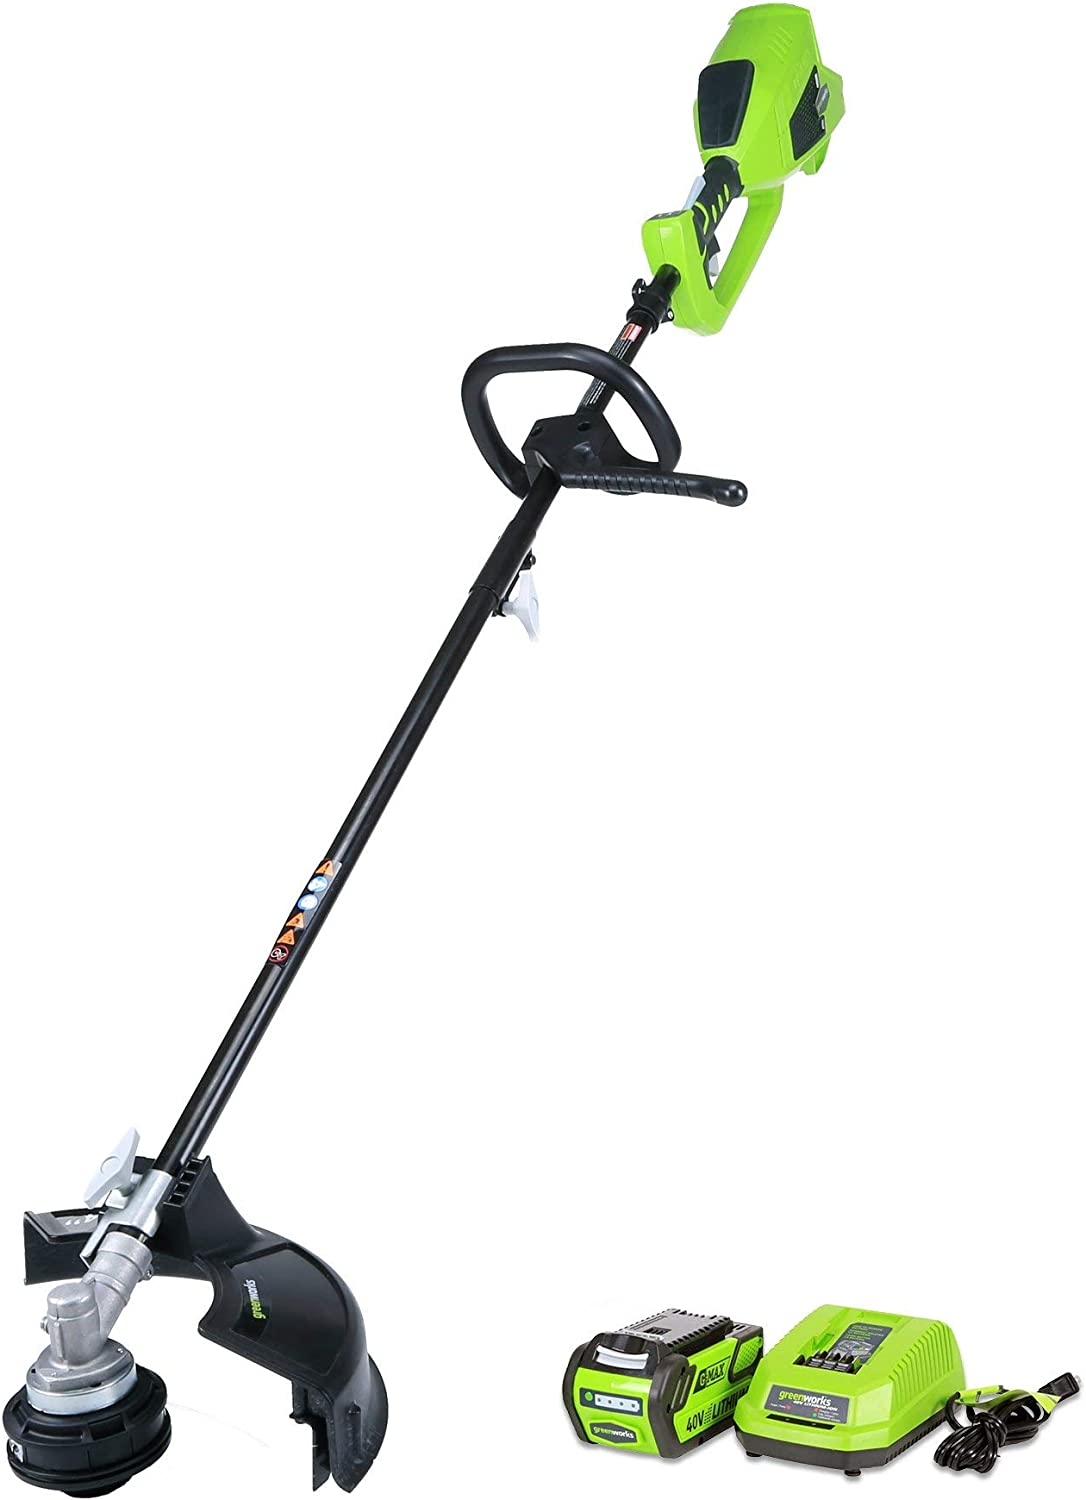 Greenworks 14-Inch 40V Cordless String Trimmer Attachment Capable , 4.0 AH Battery Included 21362 Renewed